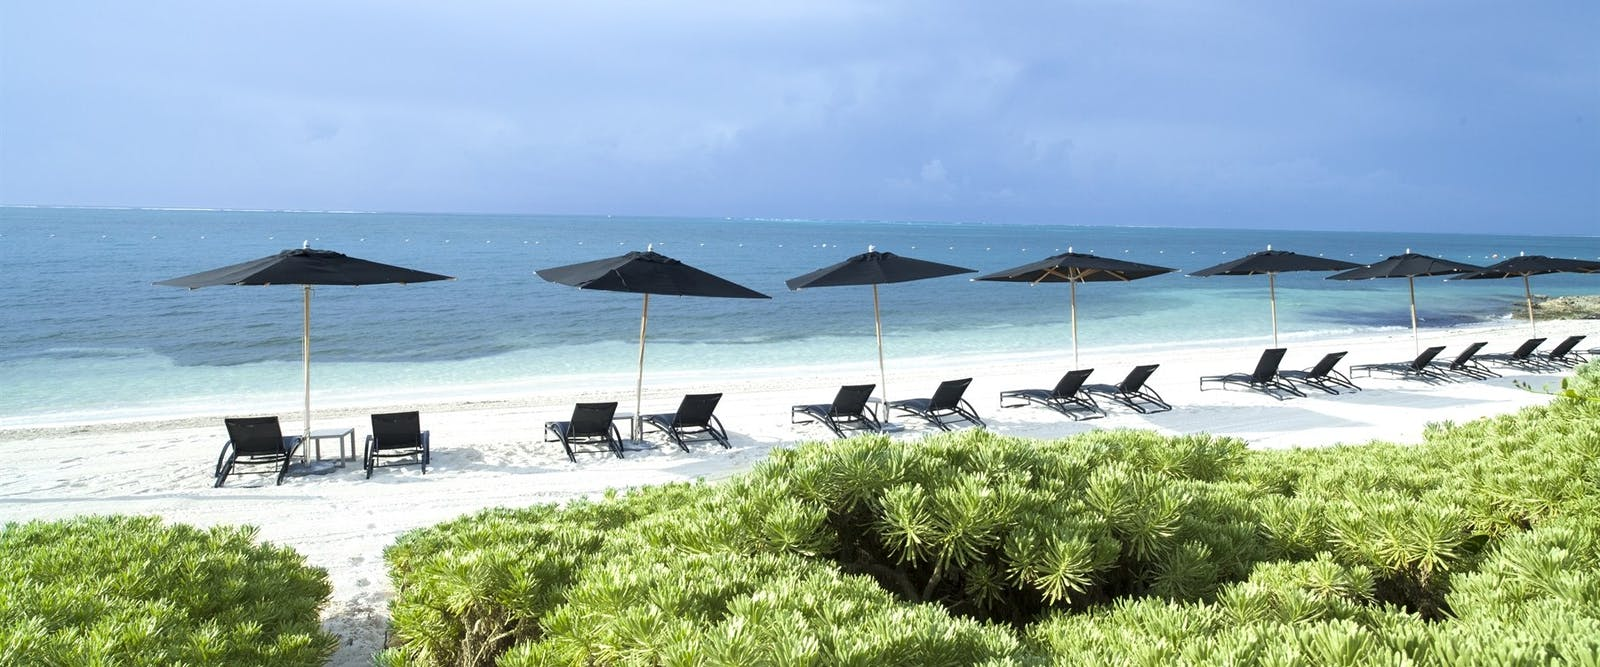 The beach at NIZUC Resort and Spa, Riviera Maya